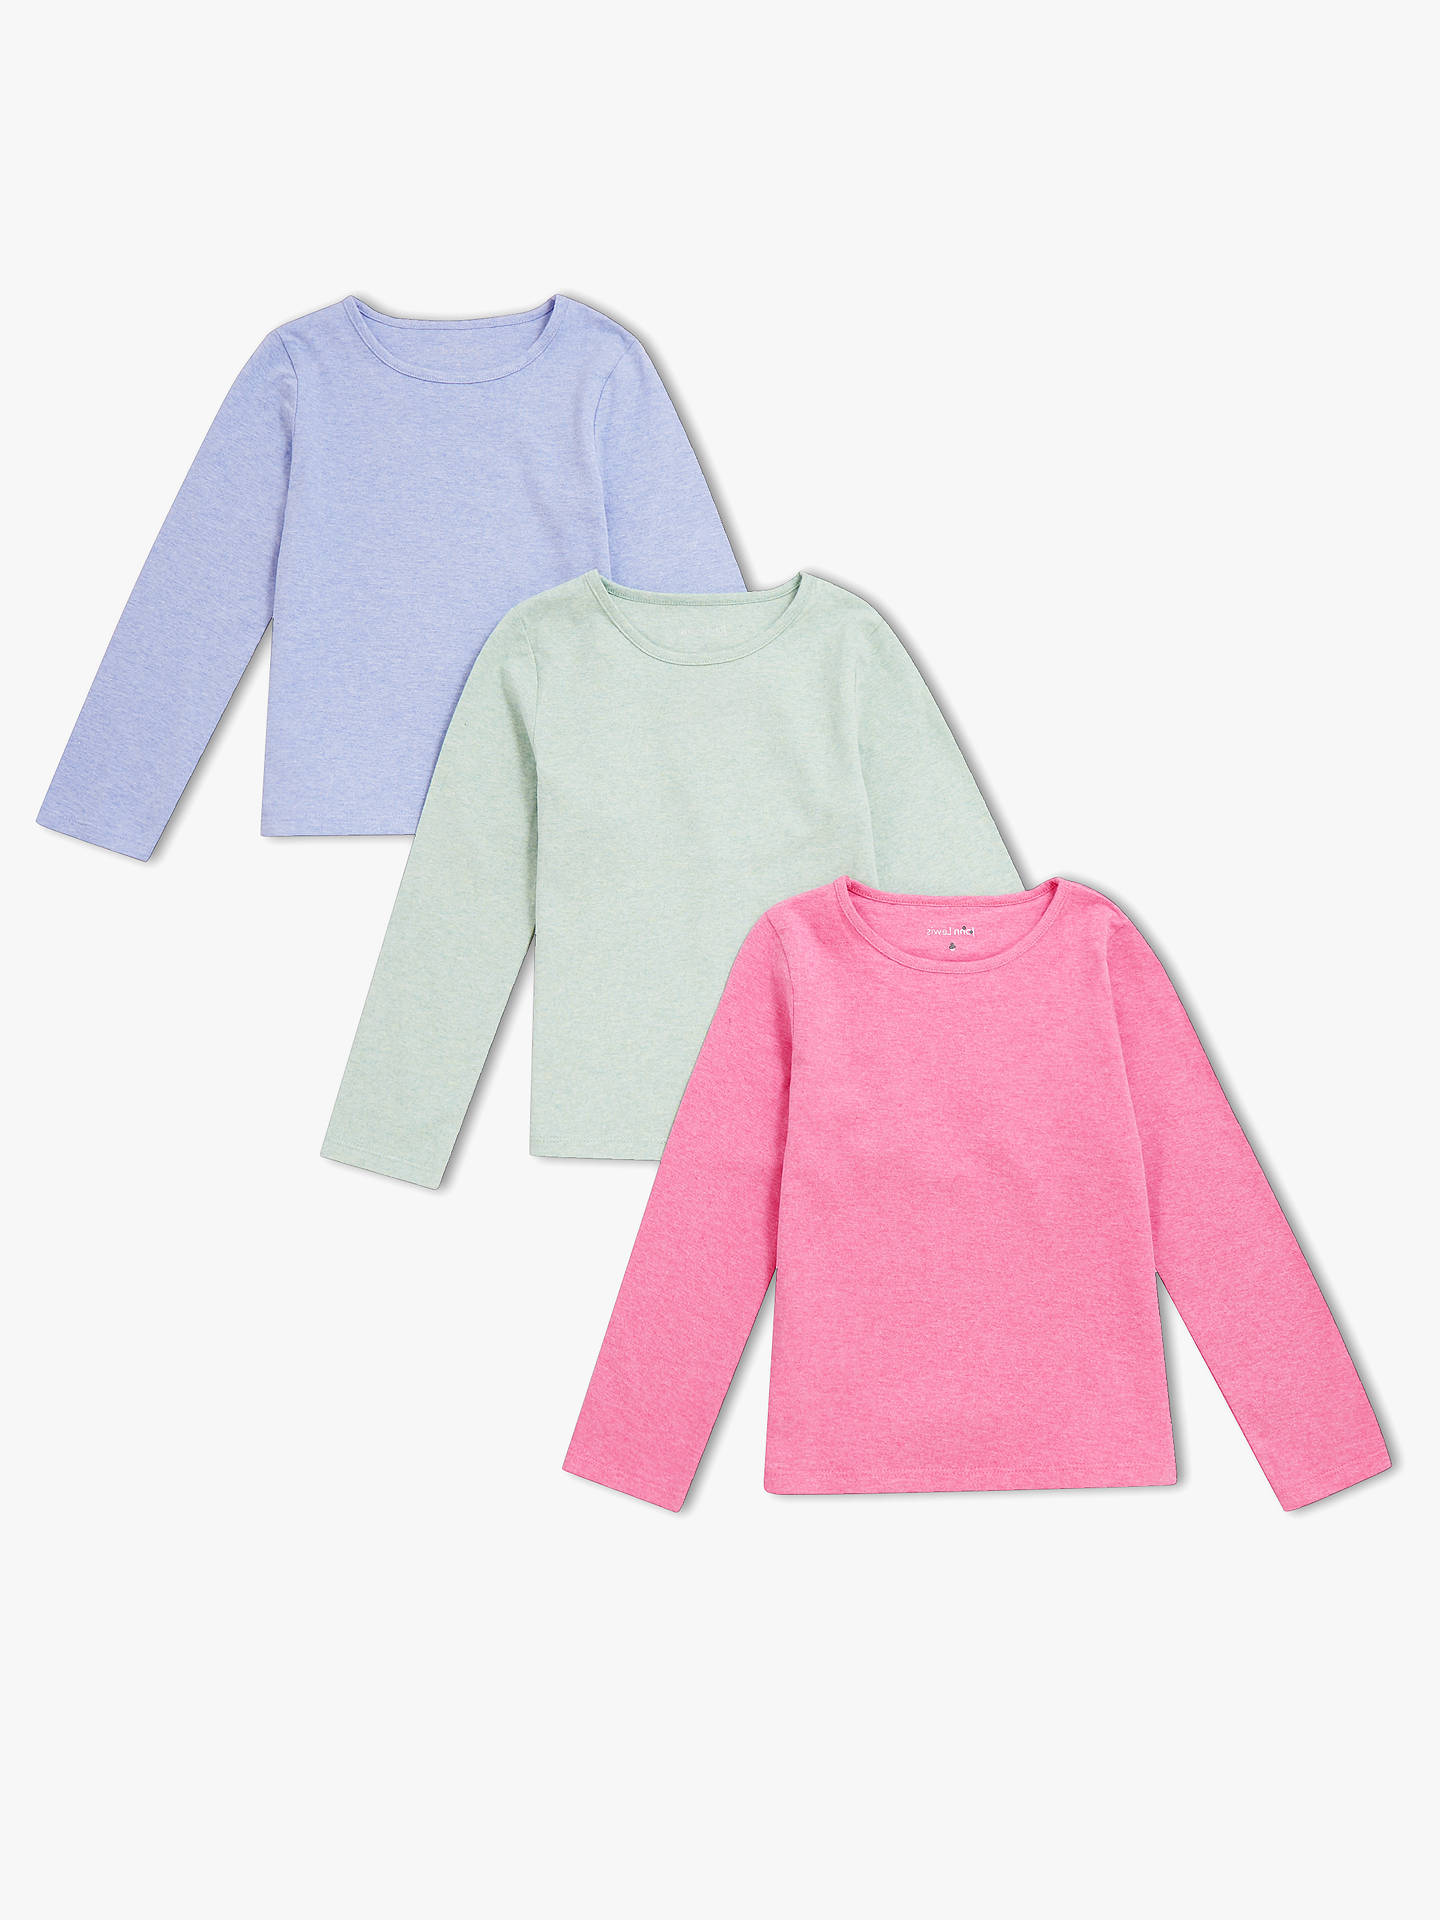 62e097c48ec Buy John Lewis   Partners Girls  Long Sleeve Plain T-Shirts